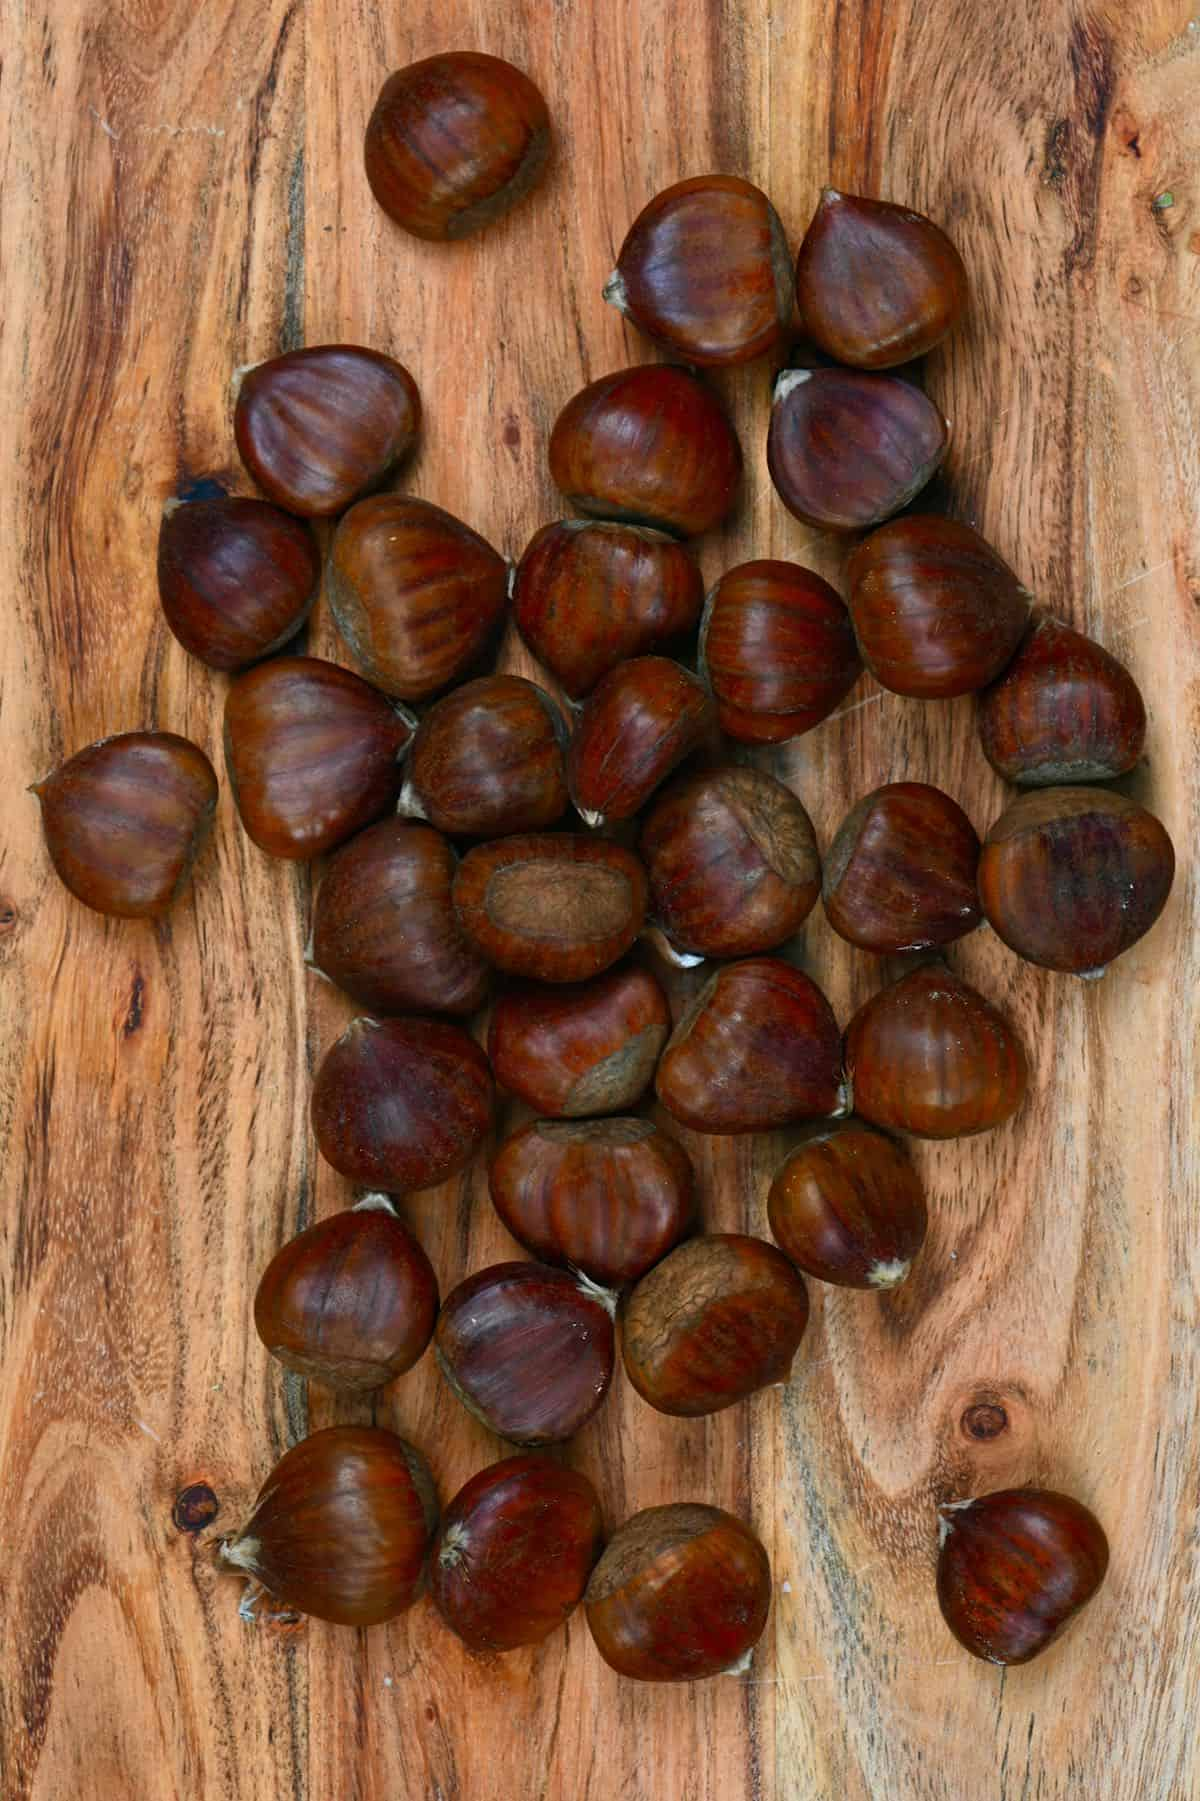 Chestnuts on a wooden board